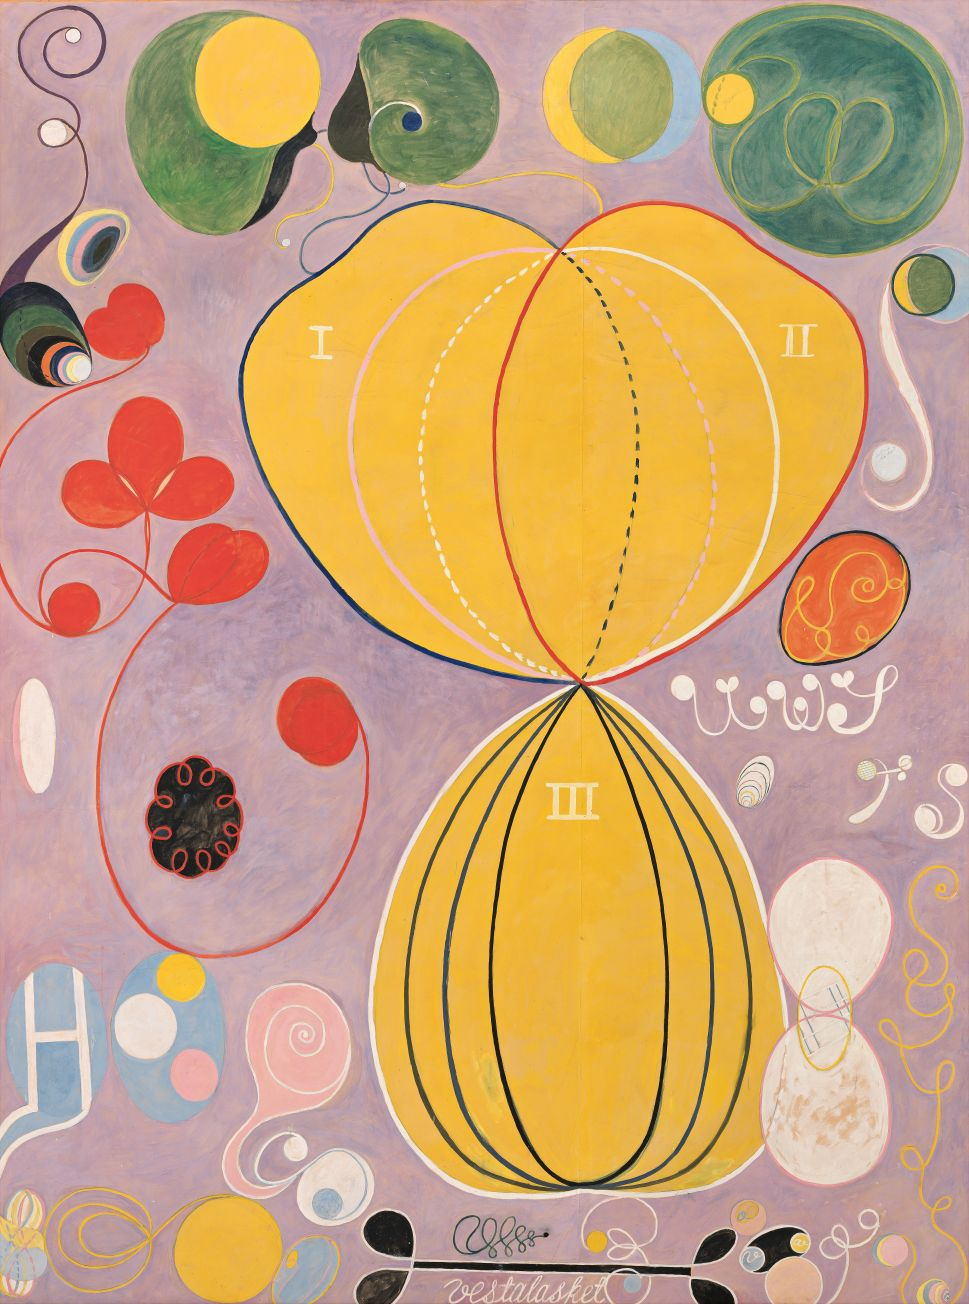 The Guggenheim's Record-Breaking Hilma af Klint Exhibition Cements the Artist's Stardom